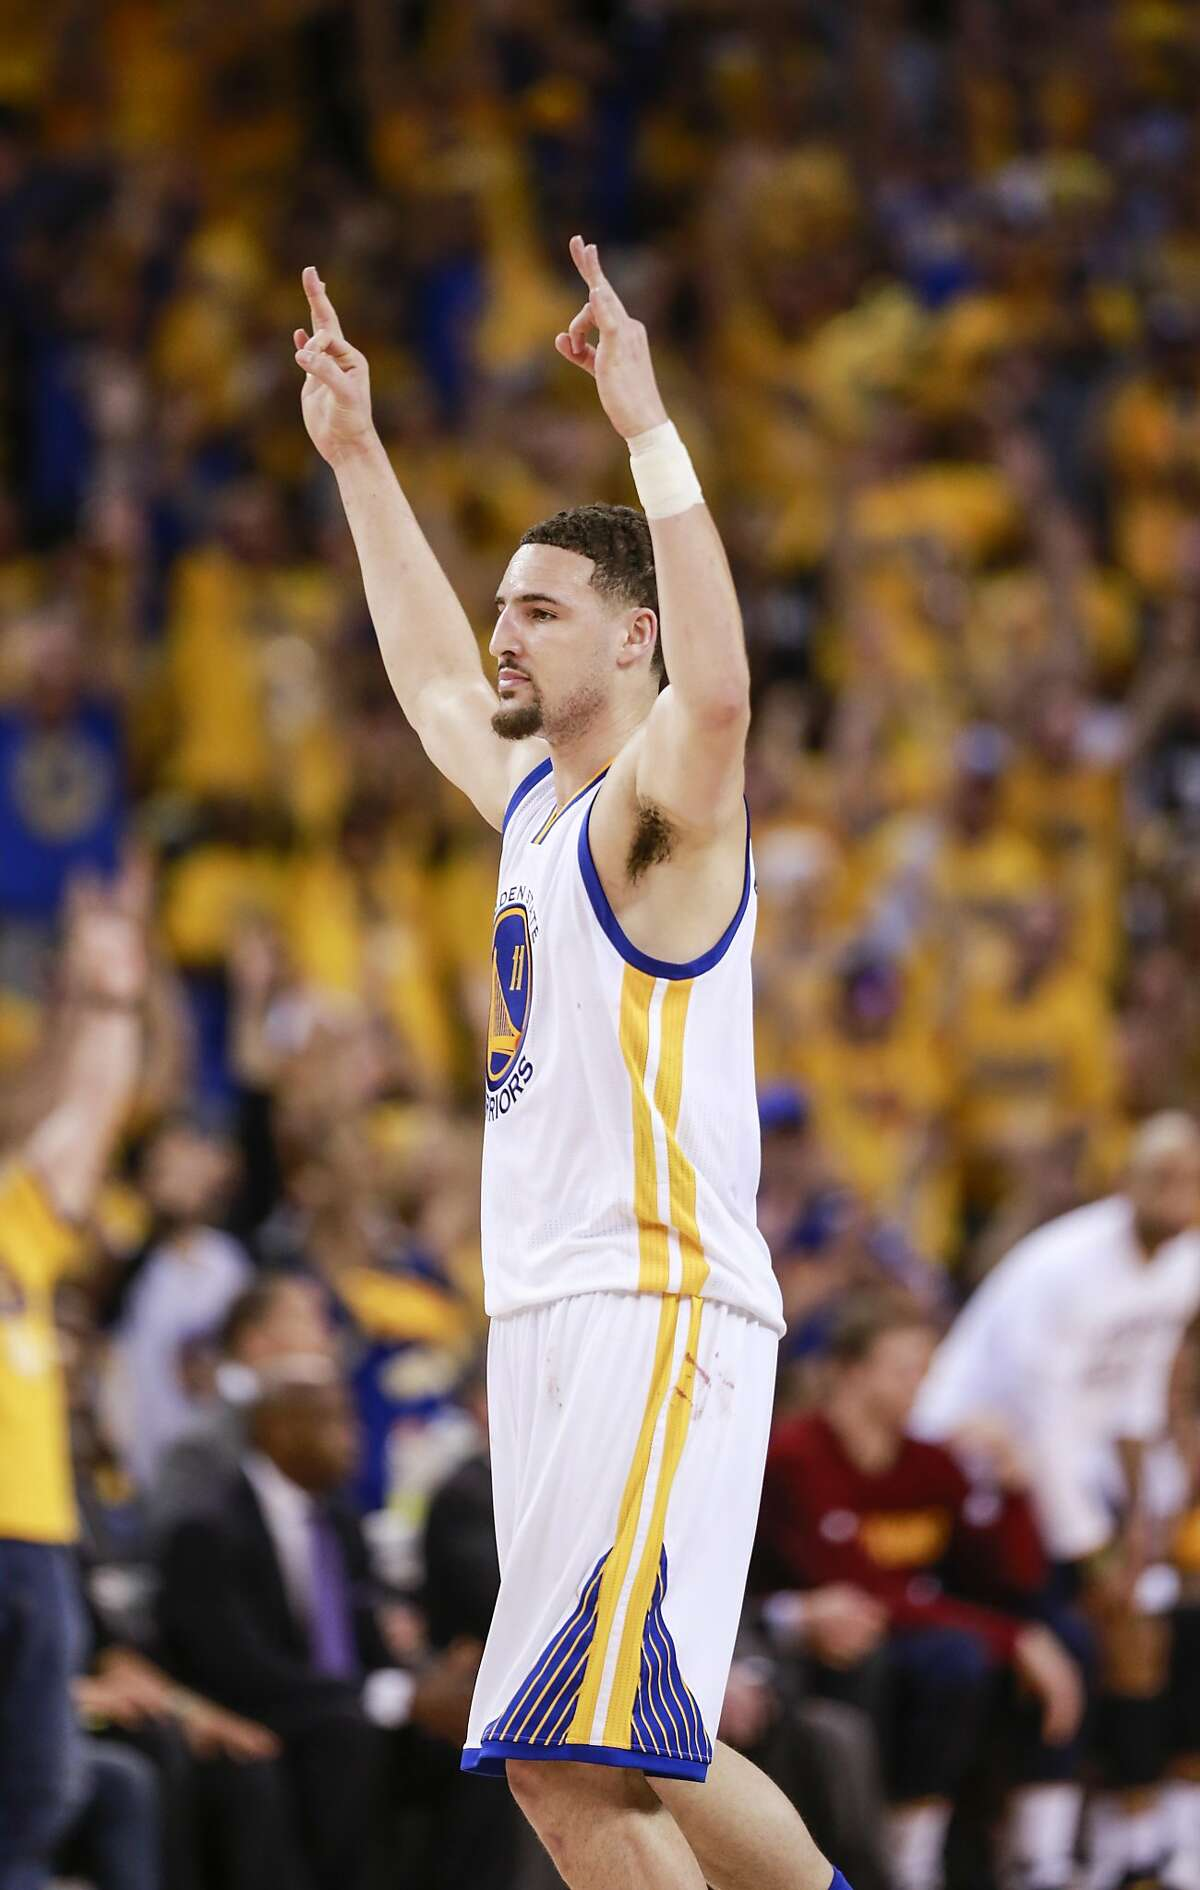 Golden State Warriors' Klay Thompson reacts in the third quarter during Game 2 of the NBA Finals at Oracle Arena on Sunday, June 5, 2016 in Oakland, Calif.